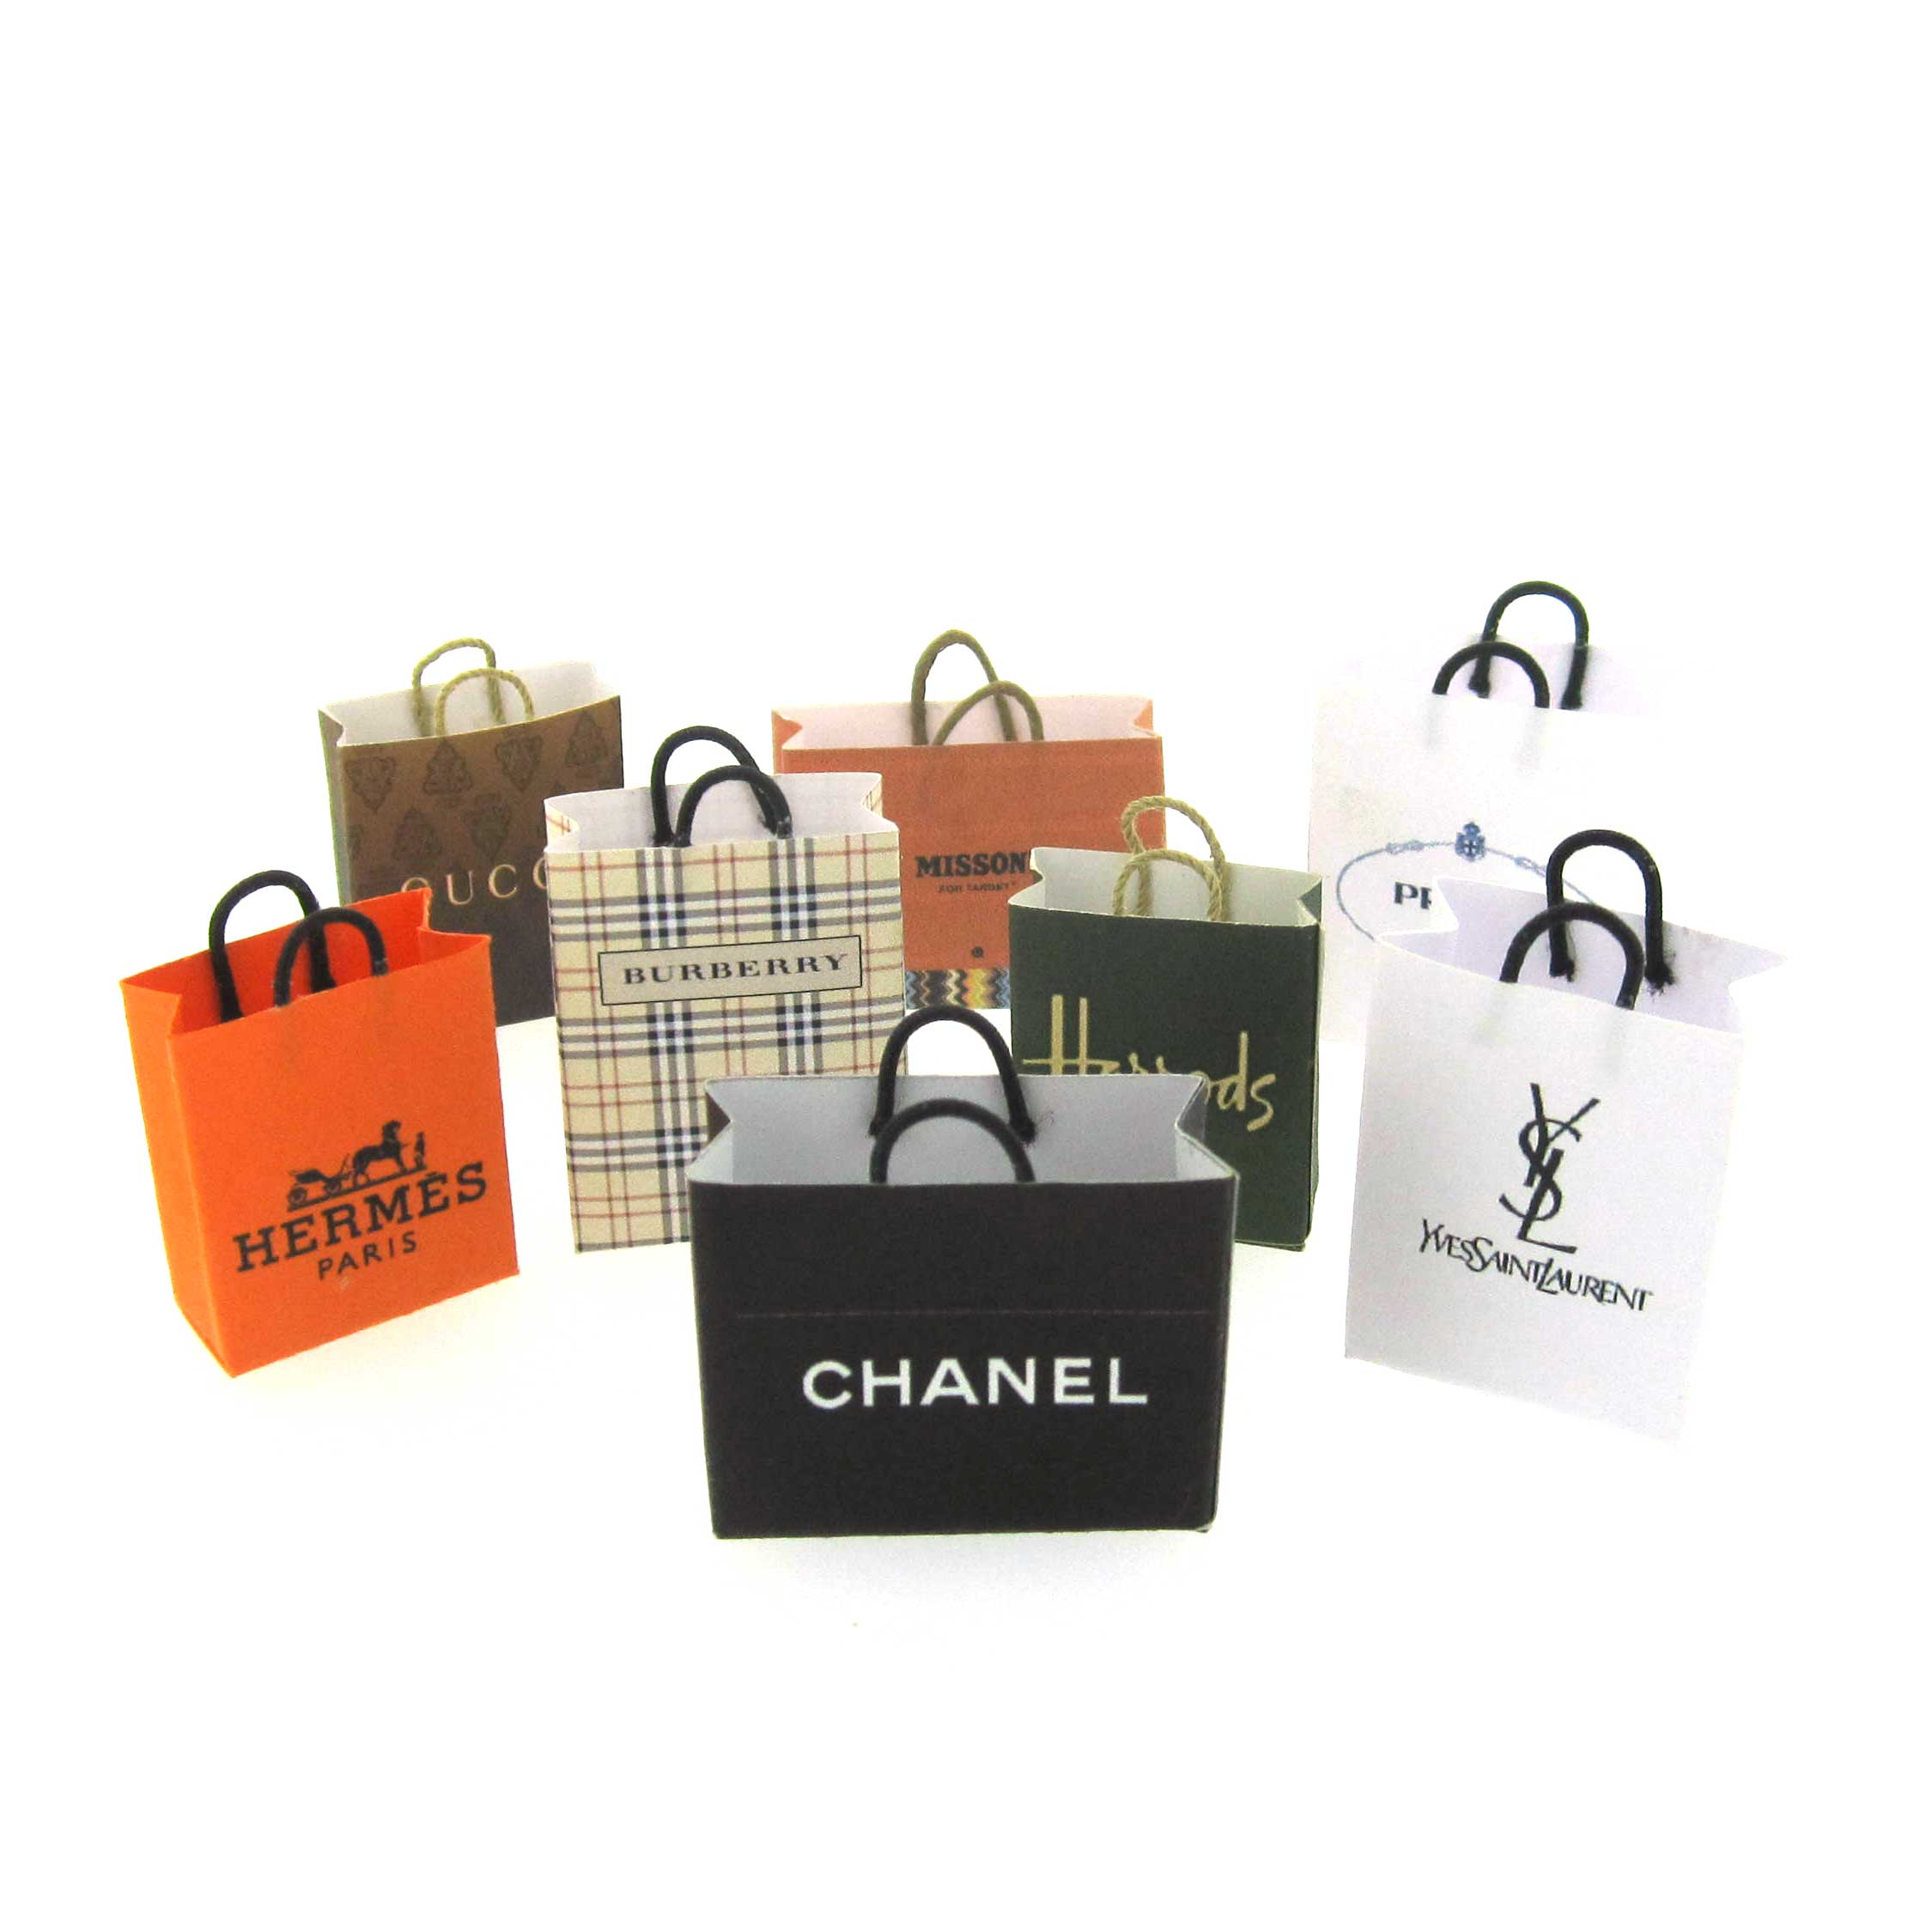 luxury brands 2 essay In one year you'll accumulate in the region of 28kg of clothing – adding up to an  estimated 172m tonnes of brand-new fashion being consumed.